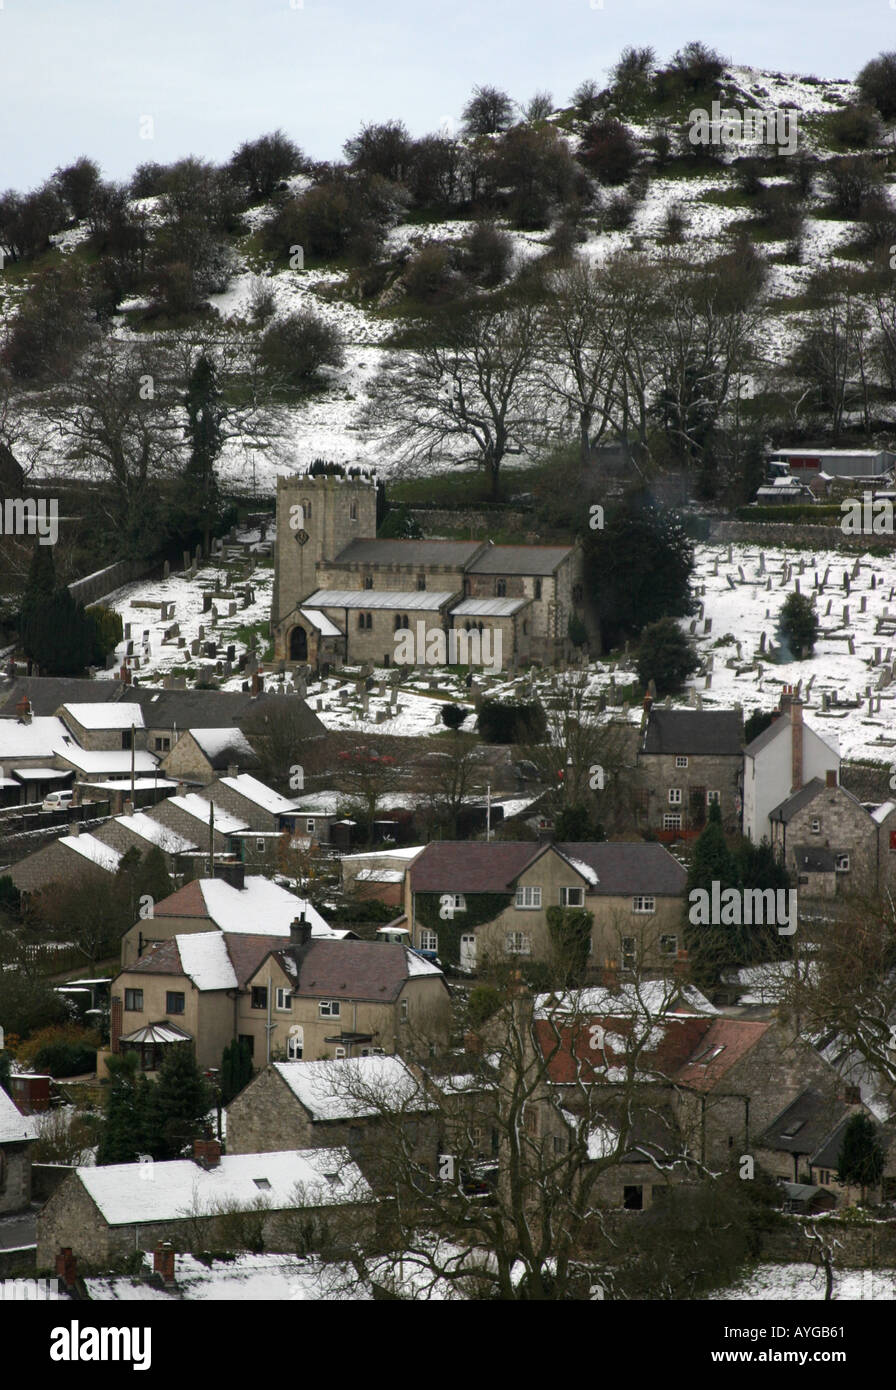 Brassington Village - Stock Image